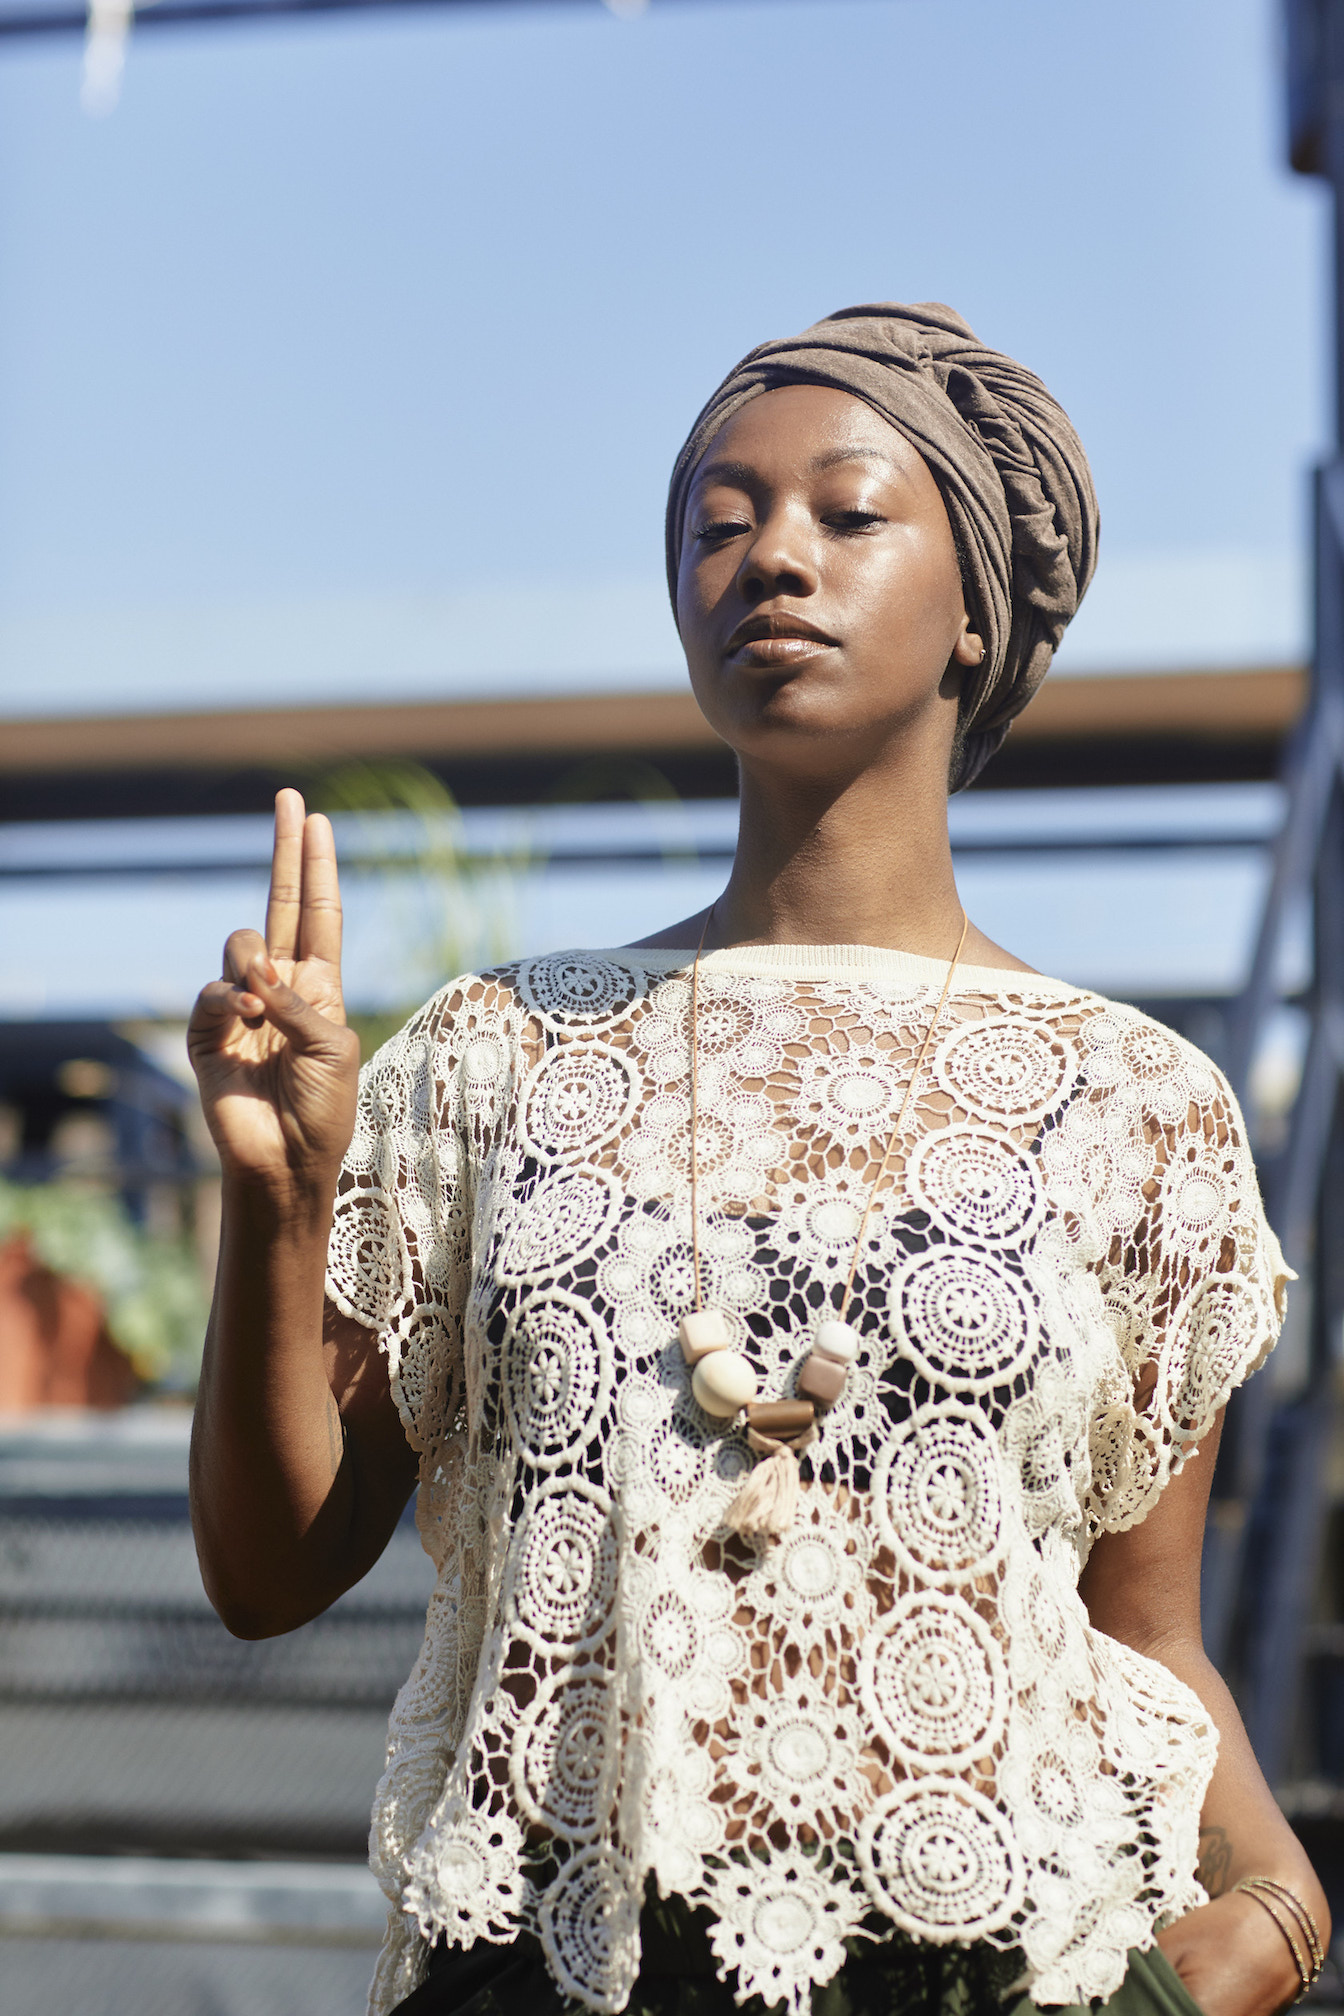 Lace top and brown headwrap casual outfit // A Week Of Outfits With Dominique Drakeford, Founder Of Melanin & Sustainable Style on The Good Trade